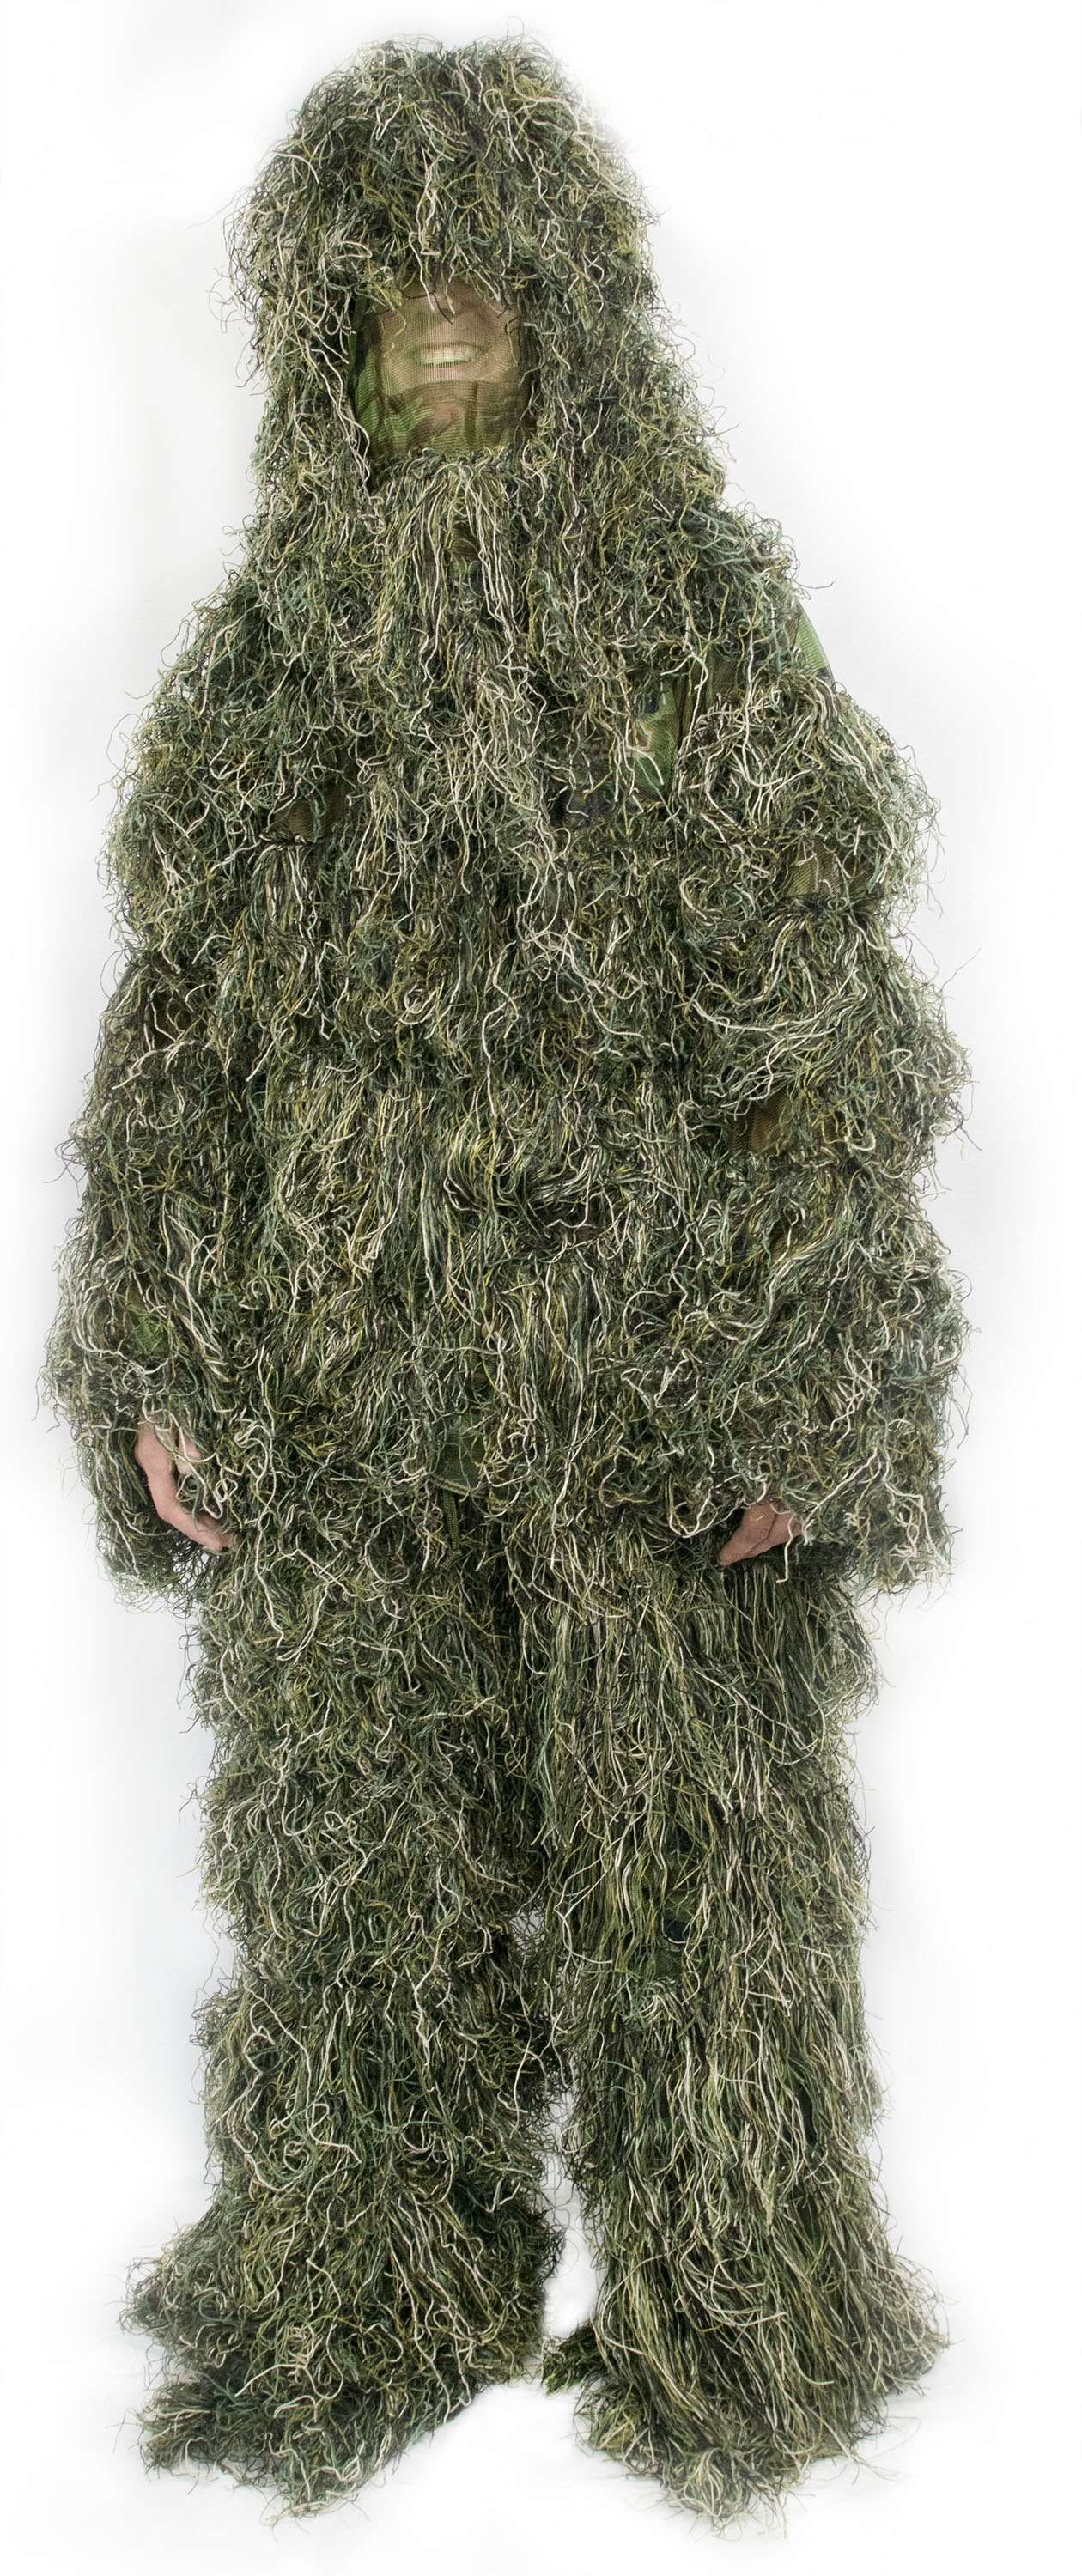 Click here to buy Comfortable Military Adults Woodland Camouflage Hunting 3D Leaf Ghillie Suits Military Camo Covering Netting Jungle... by Vivo.